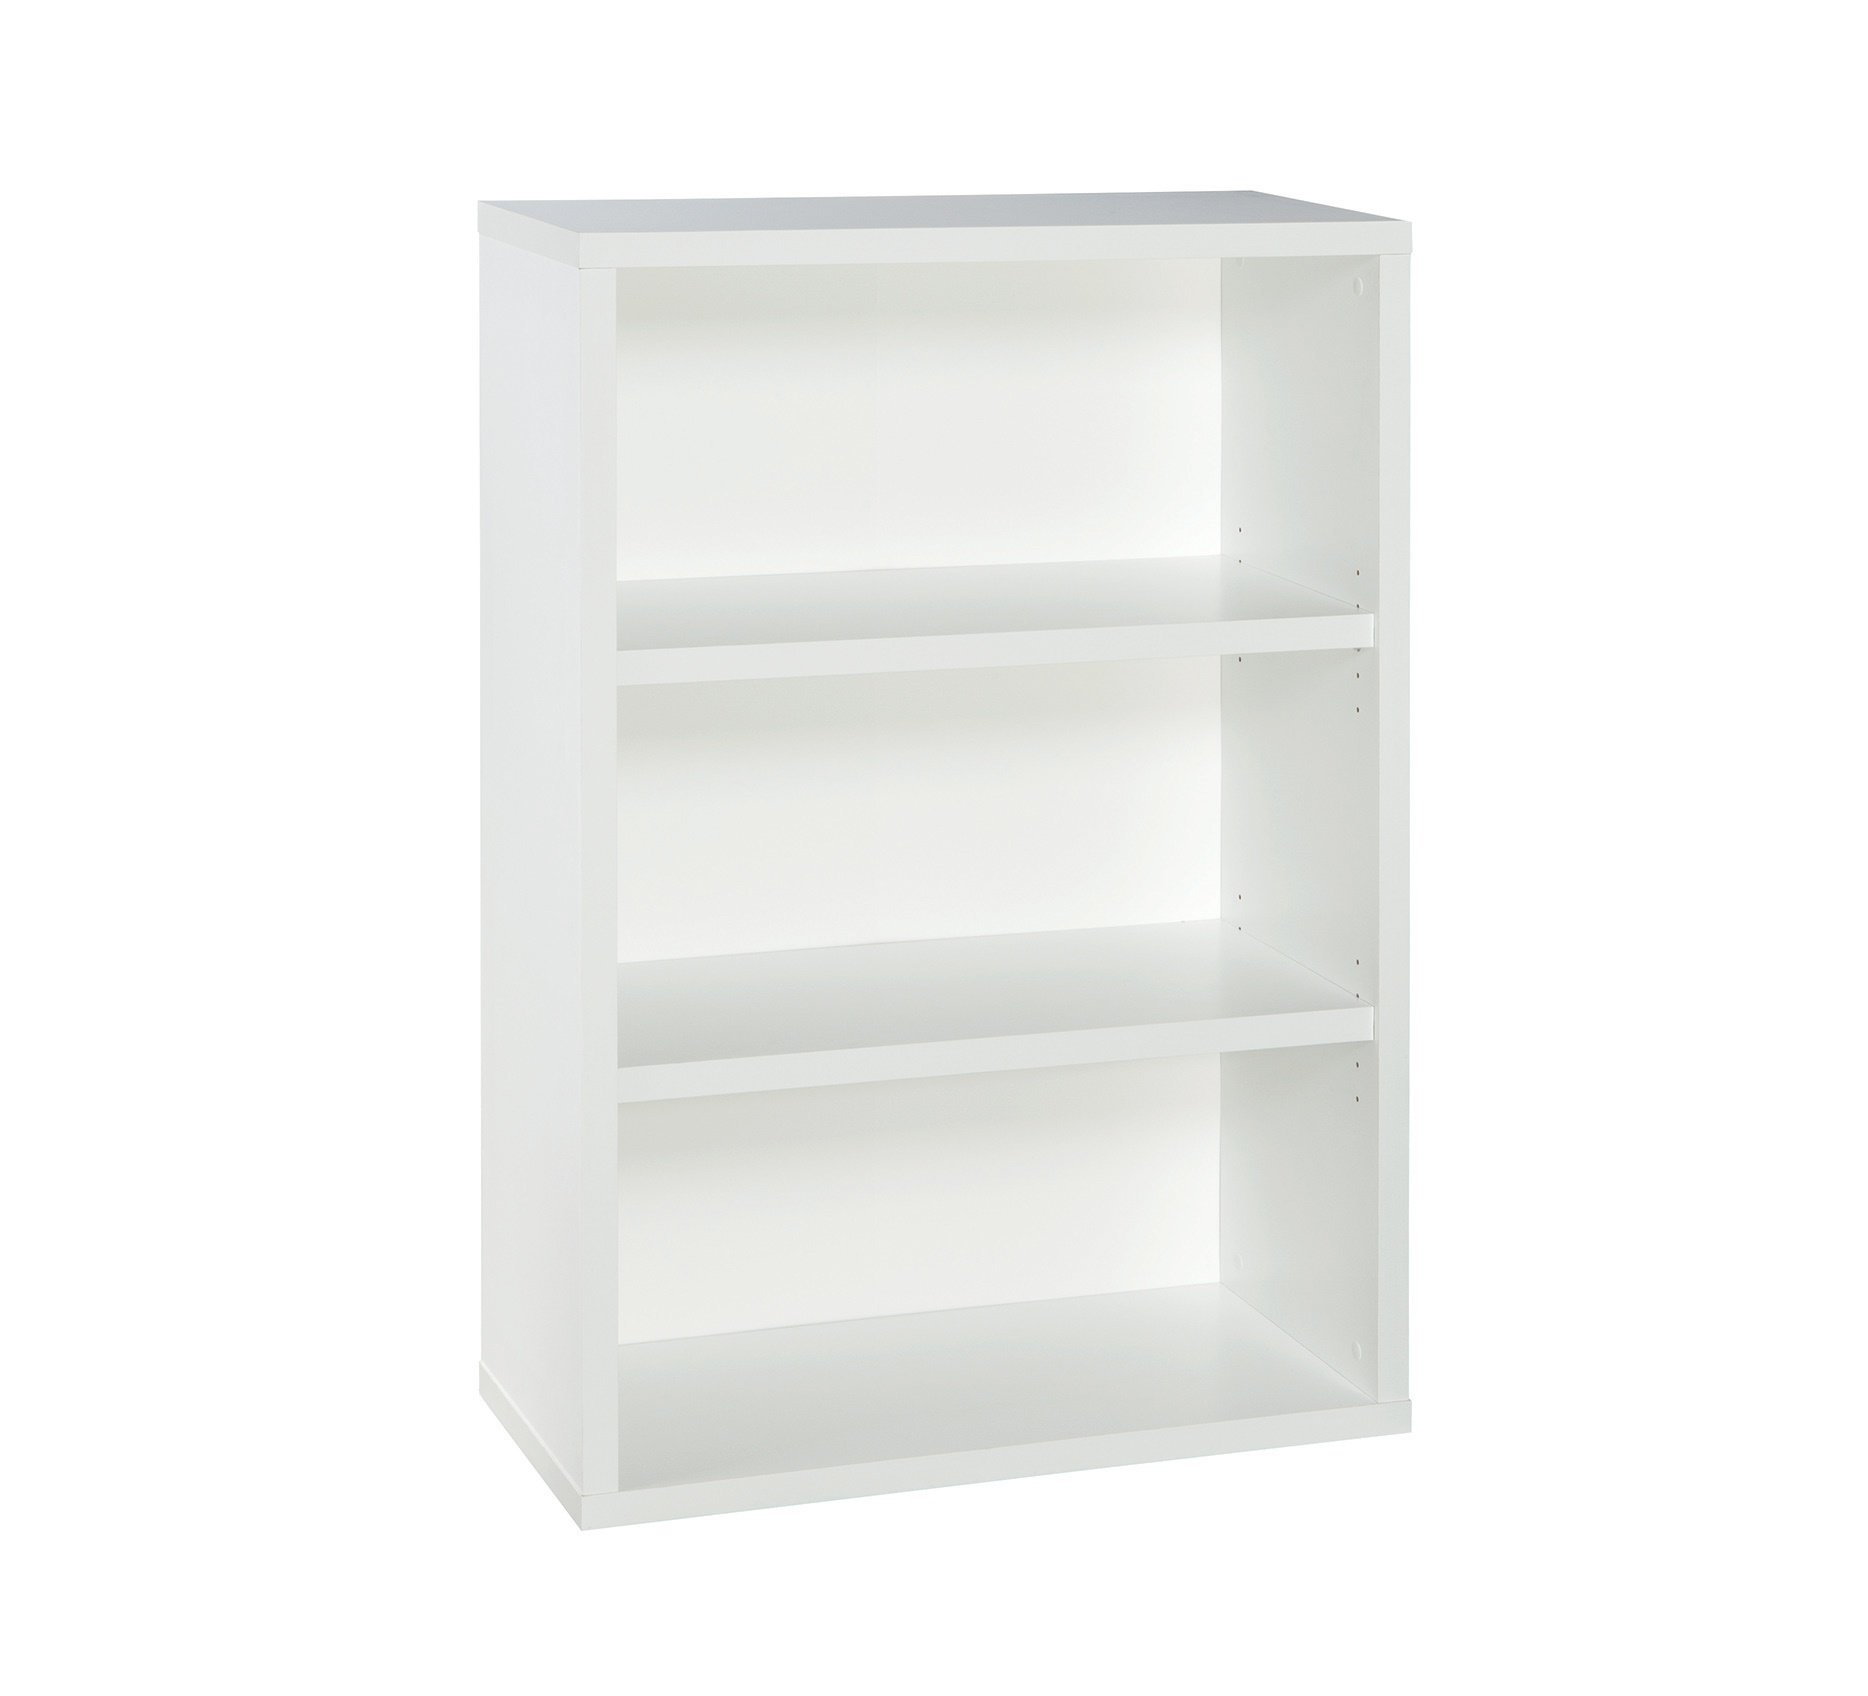 ClosetMaid 13502 Decorative 3-Shelf Premium Bookcase, White